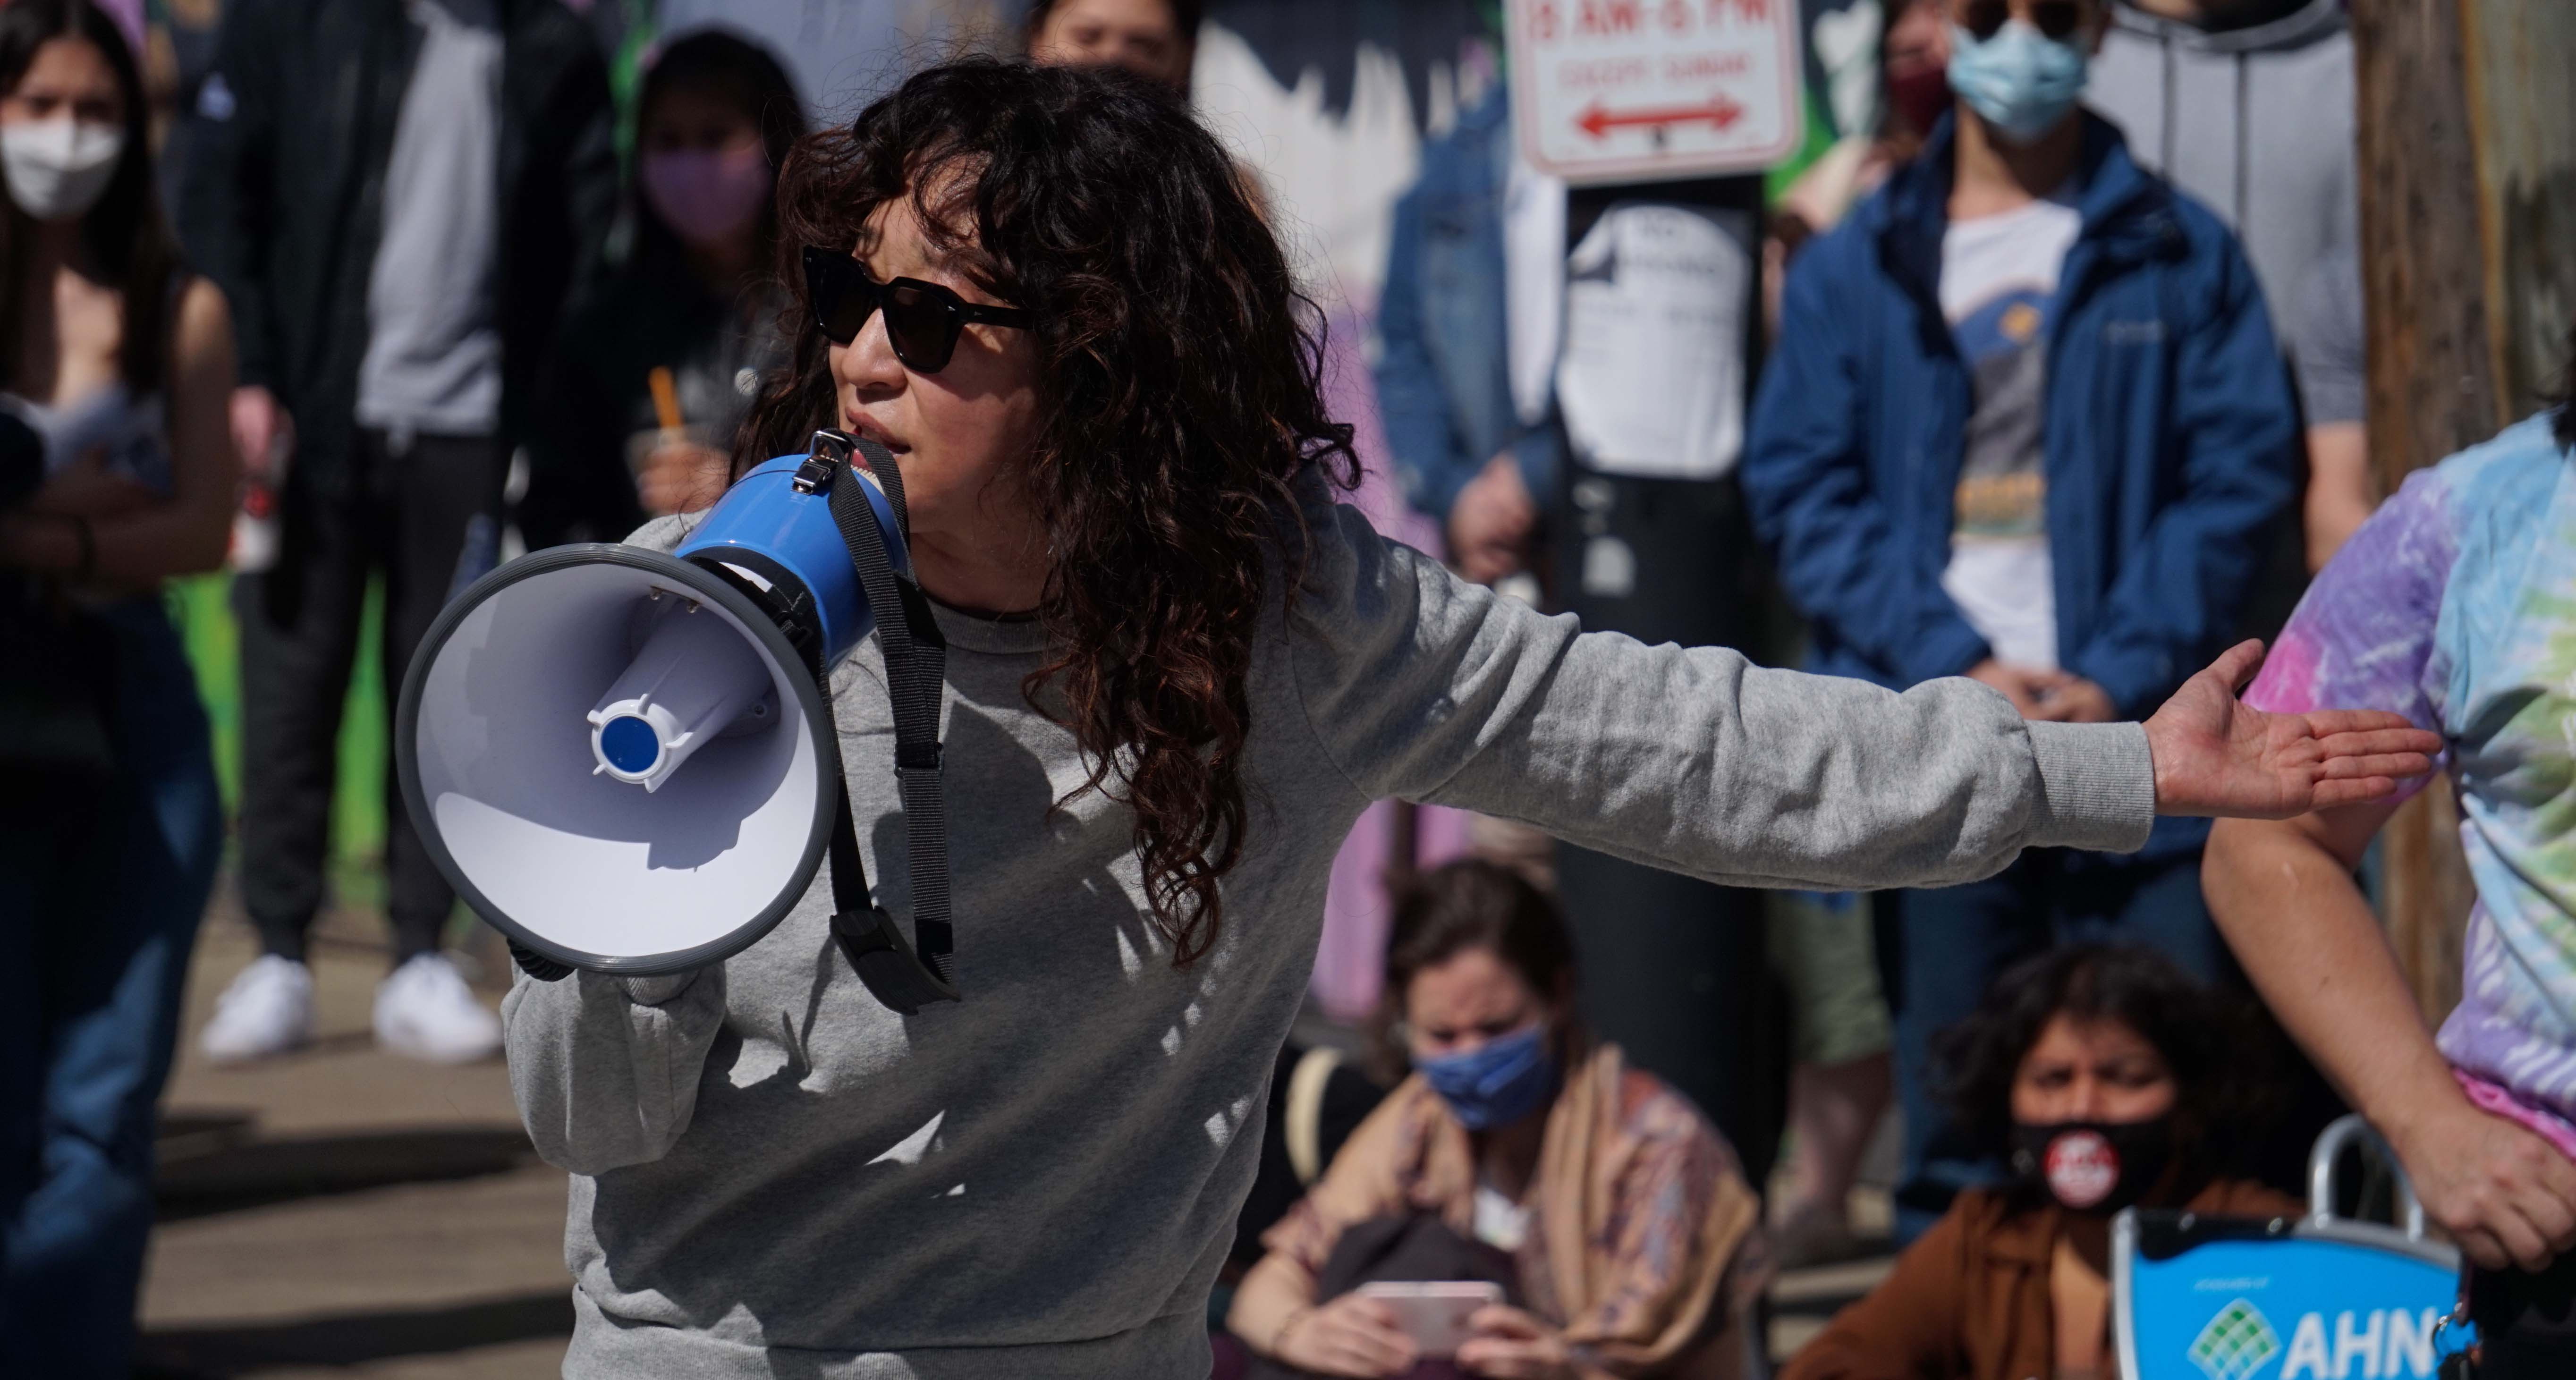 Woman addressing crowd with bullhorn